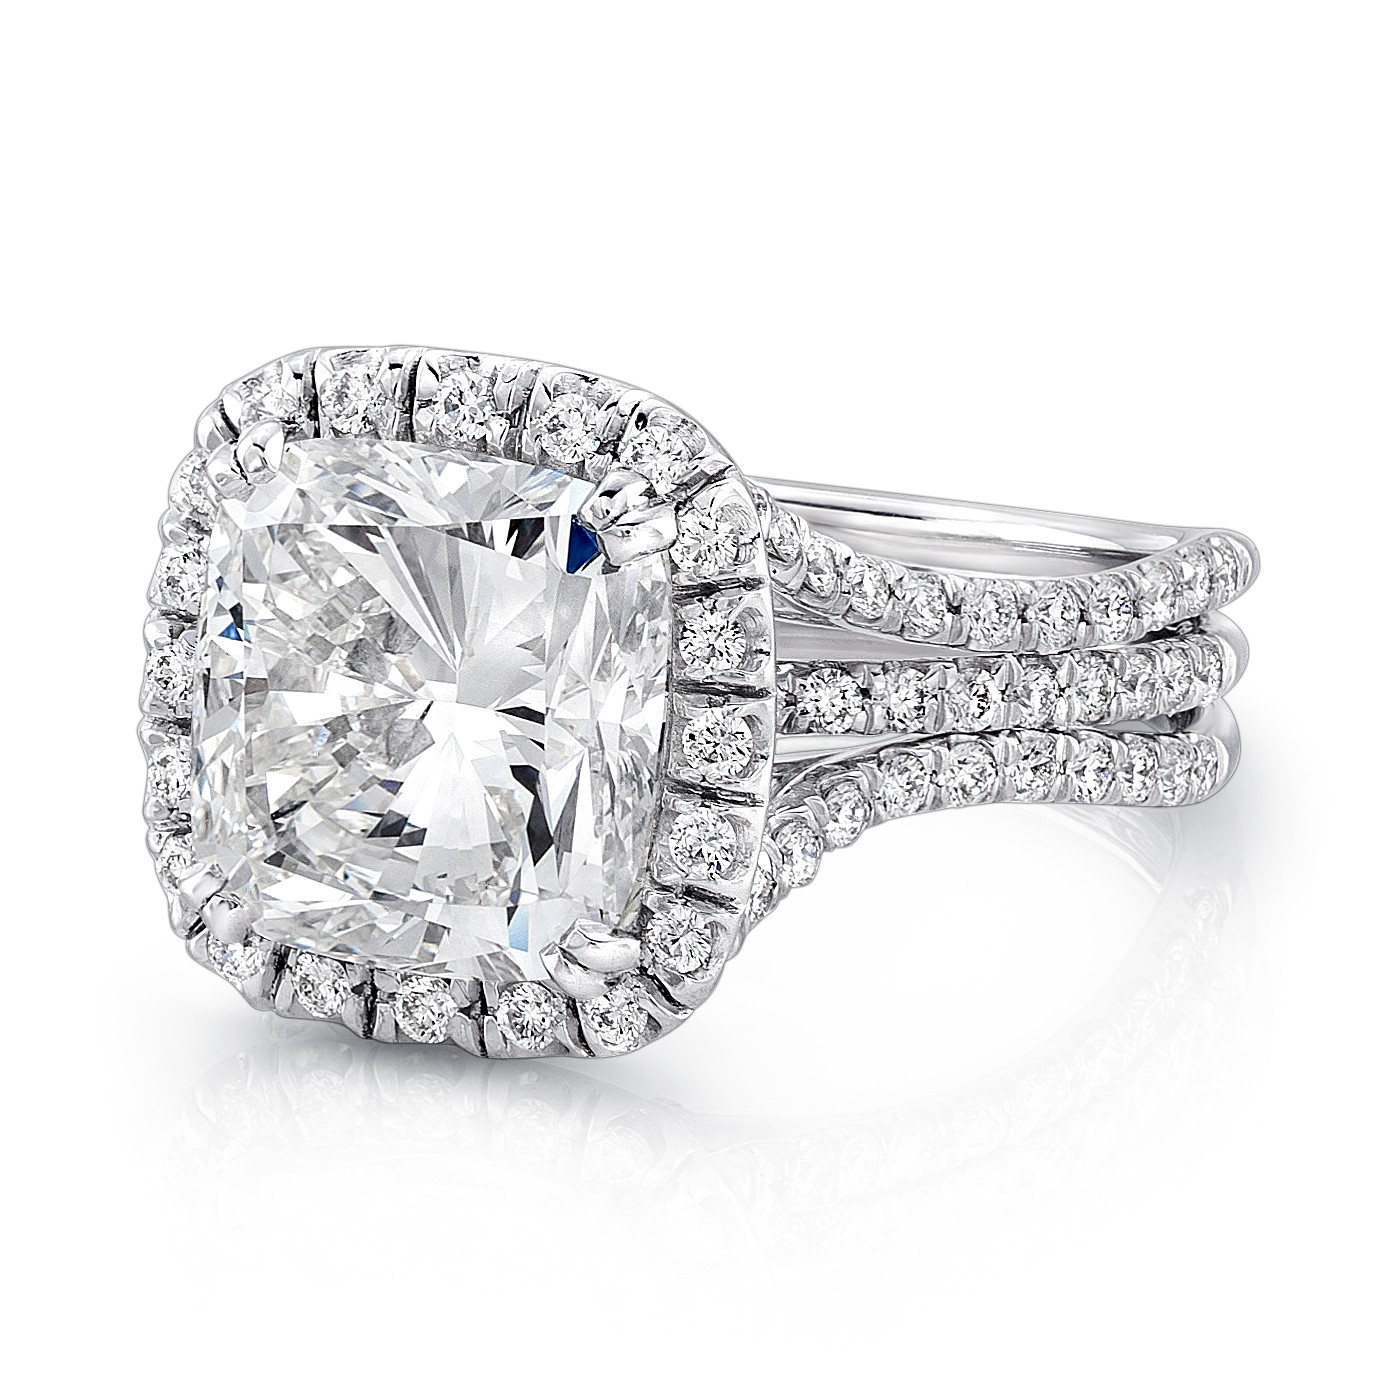 Uneek 4 Carat Cushion Cut Diamond Halo Engagement Ring with Pave Triple Shank